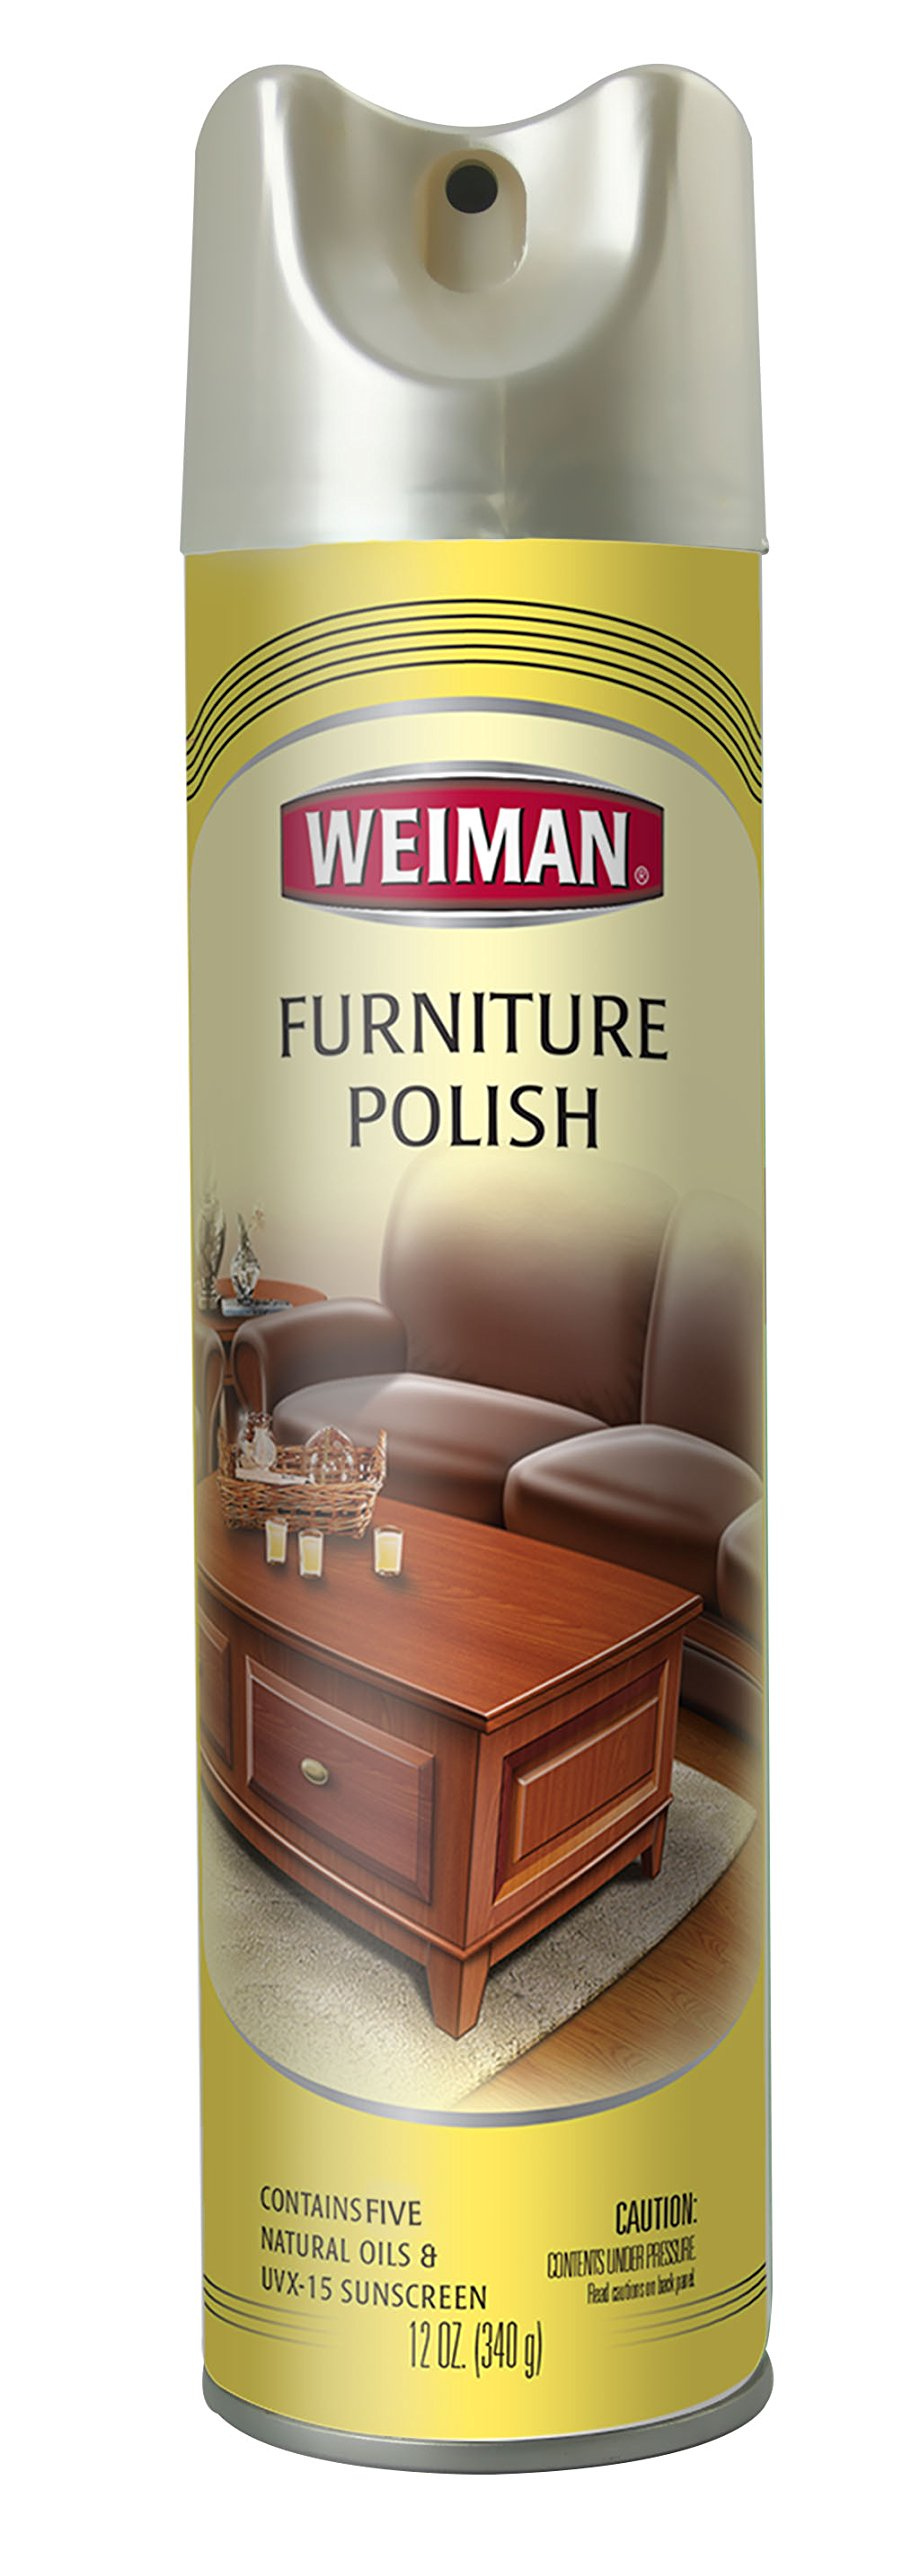 Weiman Furniture Polish With Lemon Oil 12 fl oz - 6 pack by Weiman